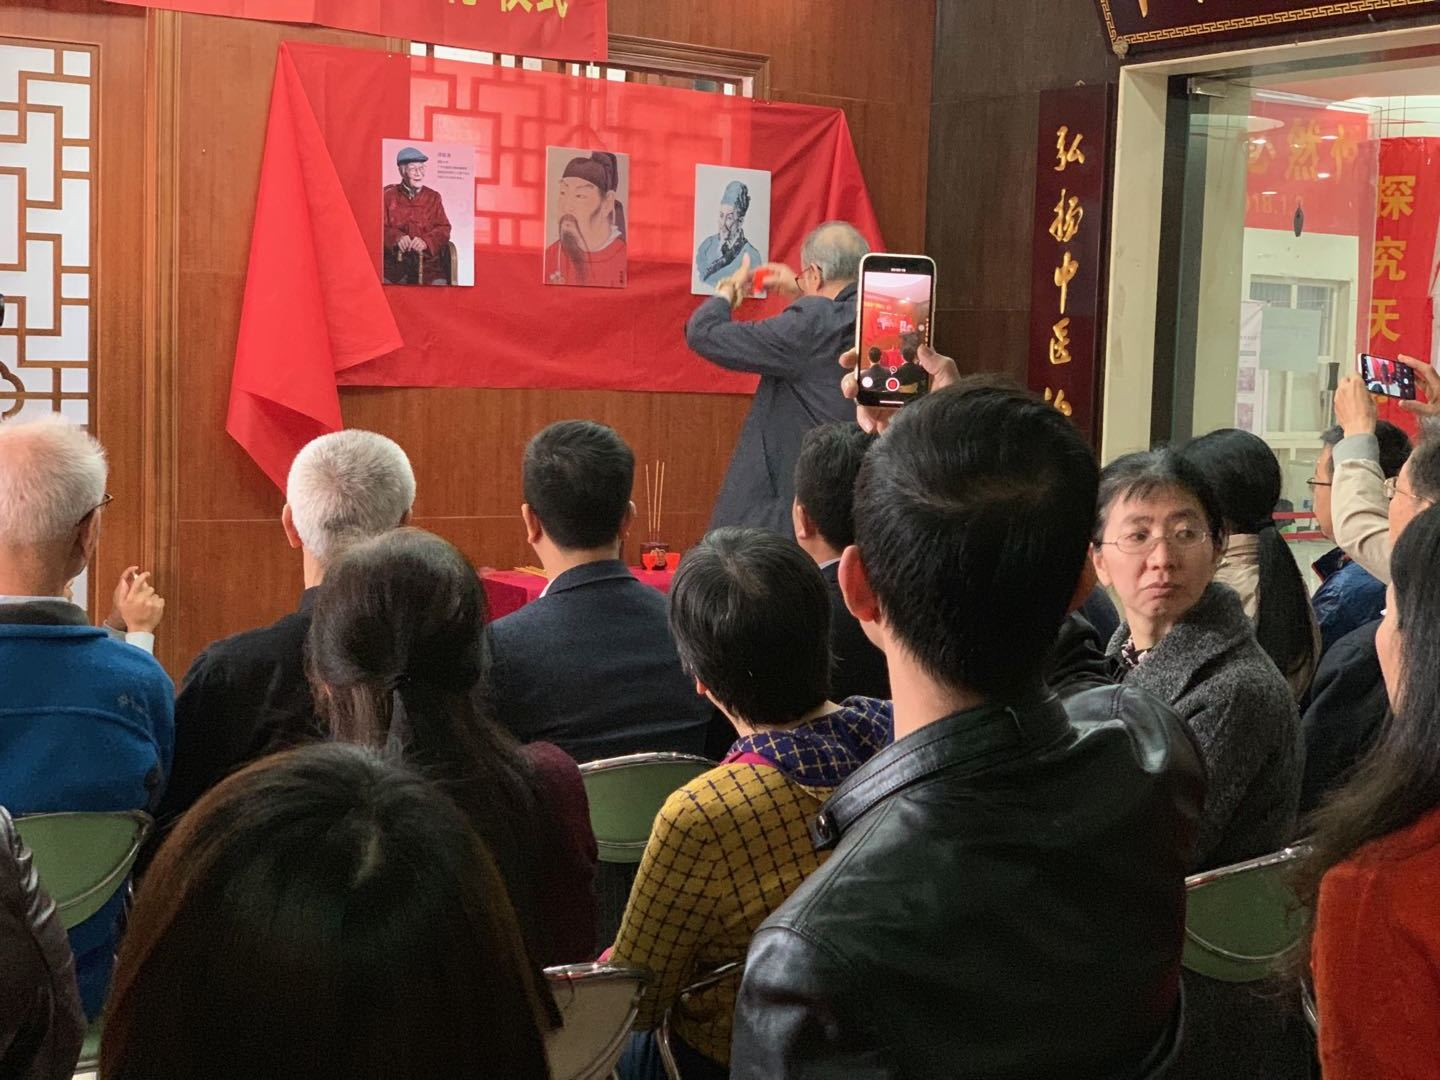 Host Hu Xiaolong bowing, and offering incense and ceremony wine to Chinese medicine masters Zhang Zhongjing, Sun Ximiao, Deng Tietao's pictures.